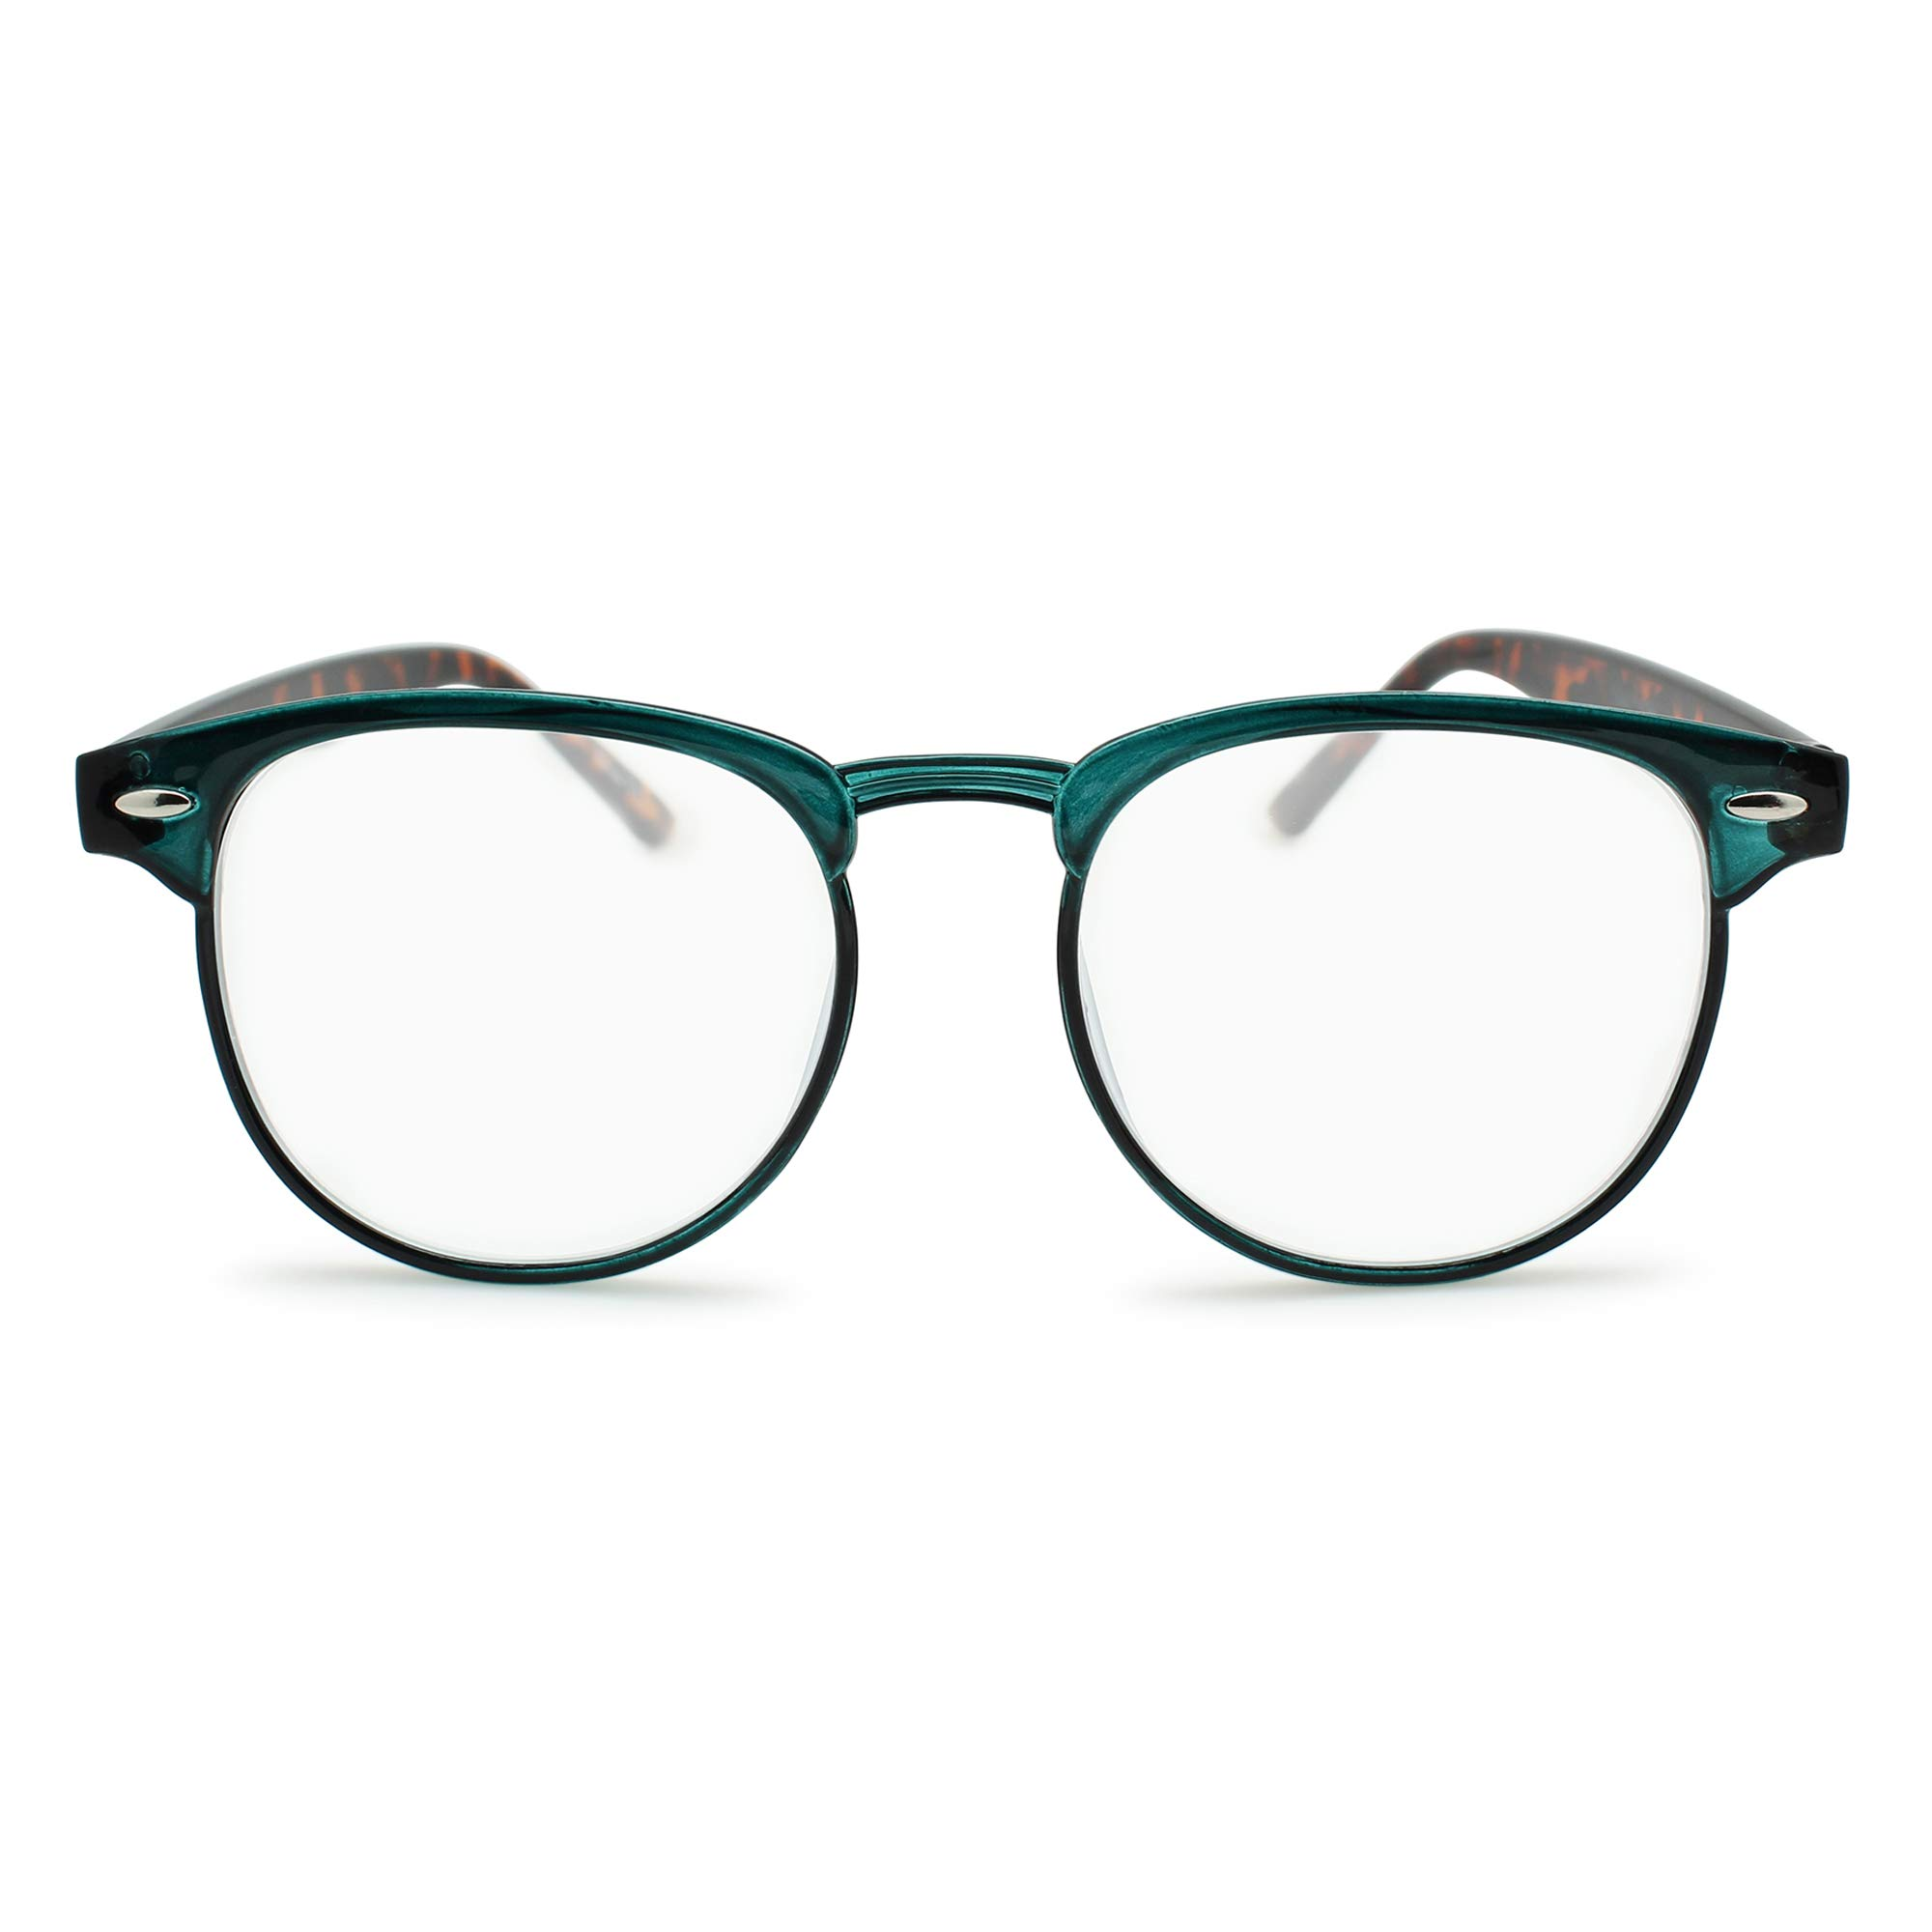 2SeeLife-Round Browline Computer Reading Glasses for Man Woman, Blue Light Blocking Readers | Tortoise Green, 2.25